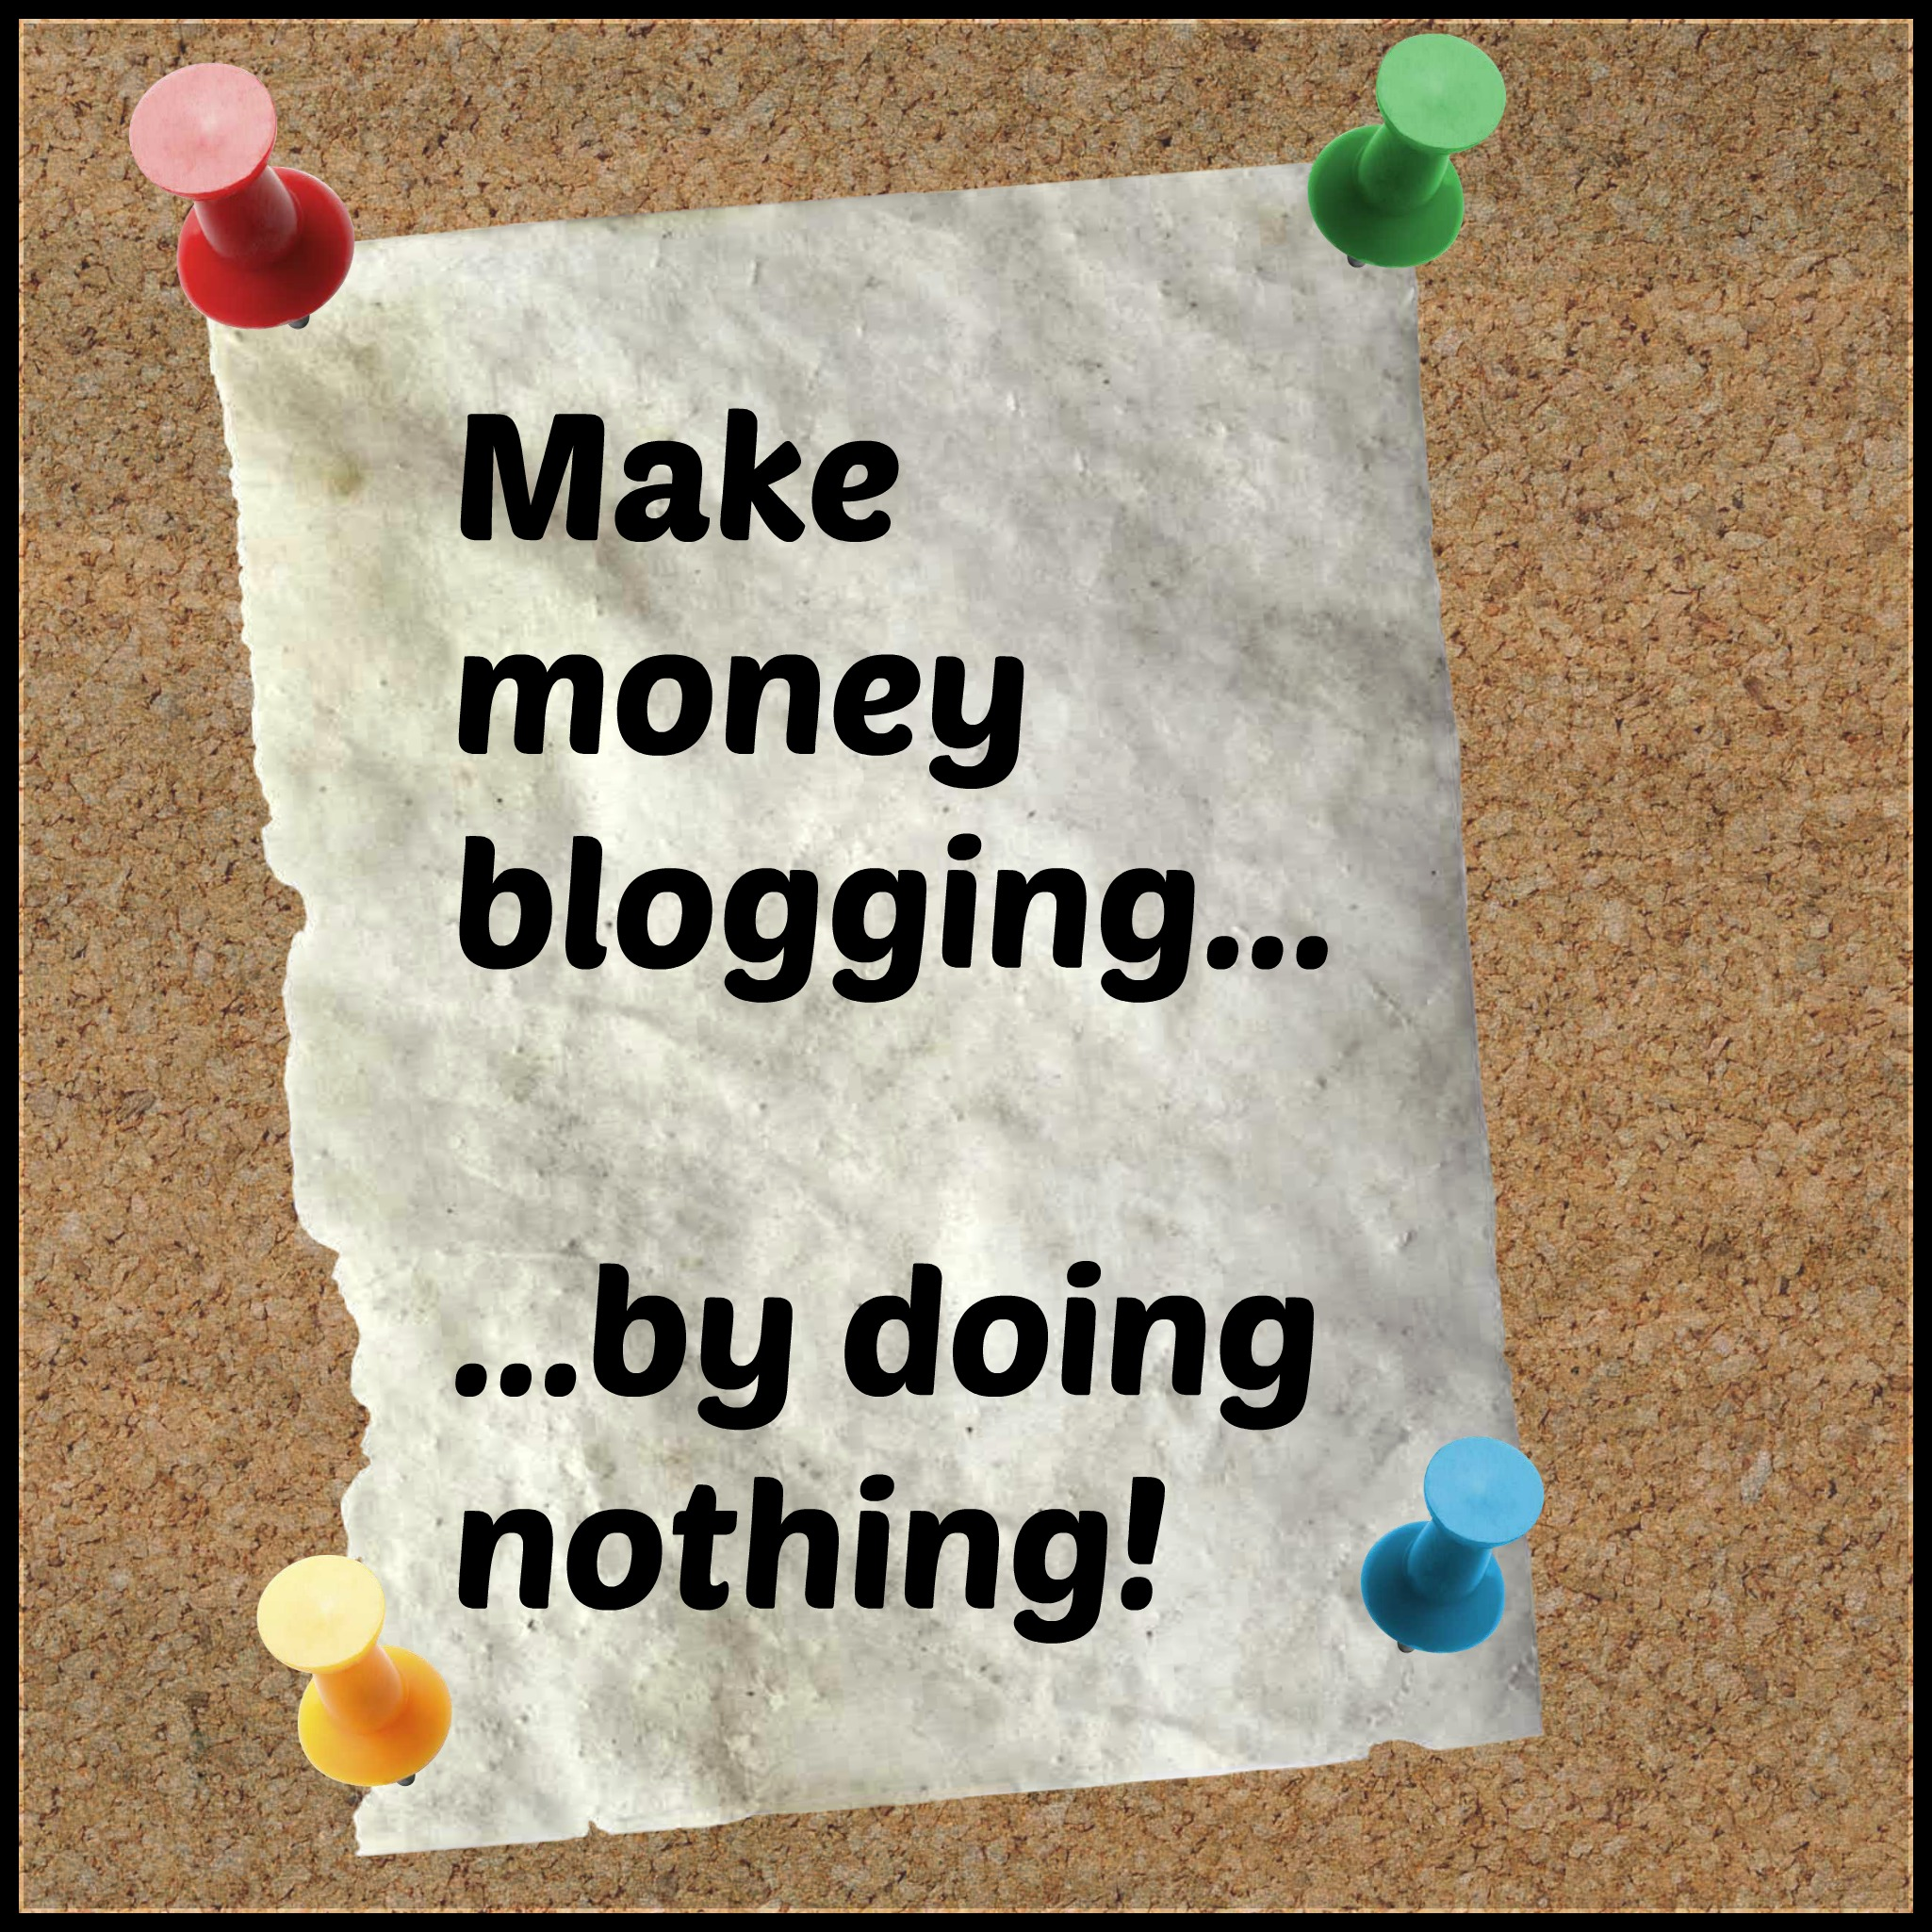 Make money blogging note on corkboard